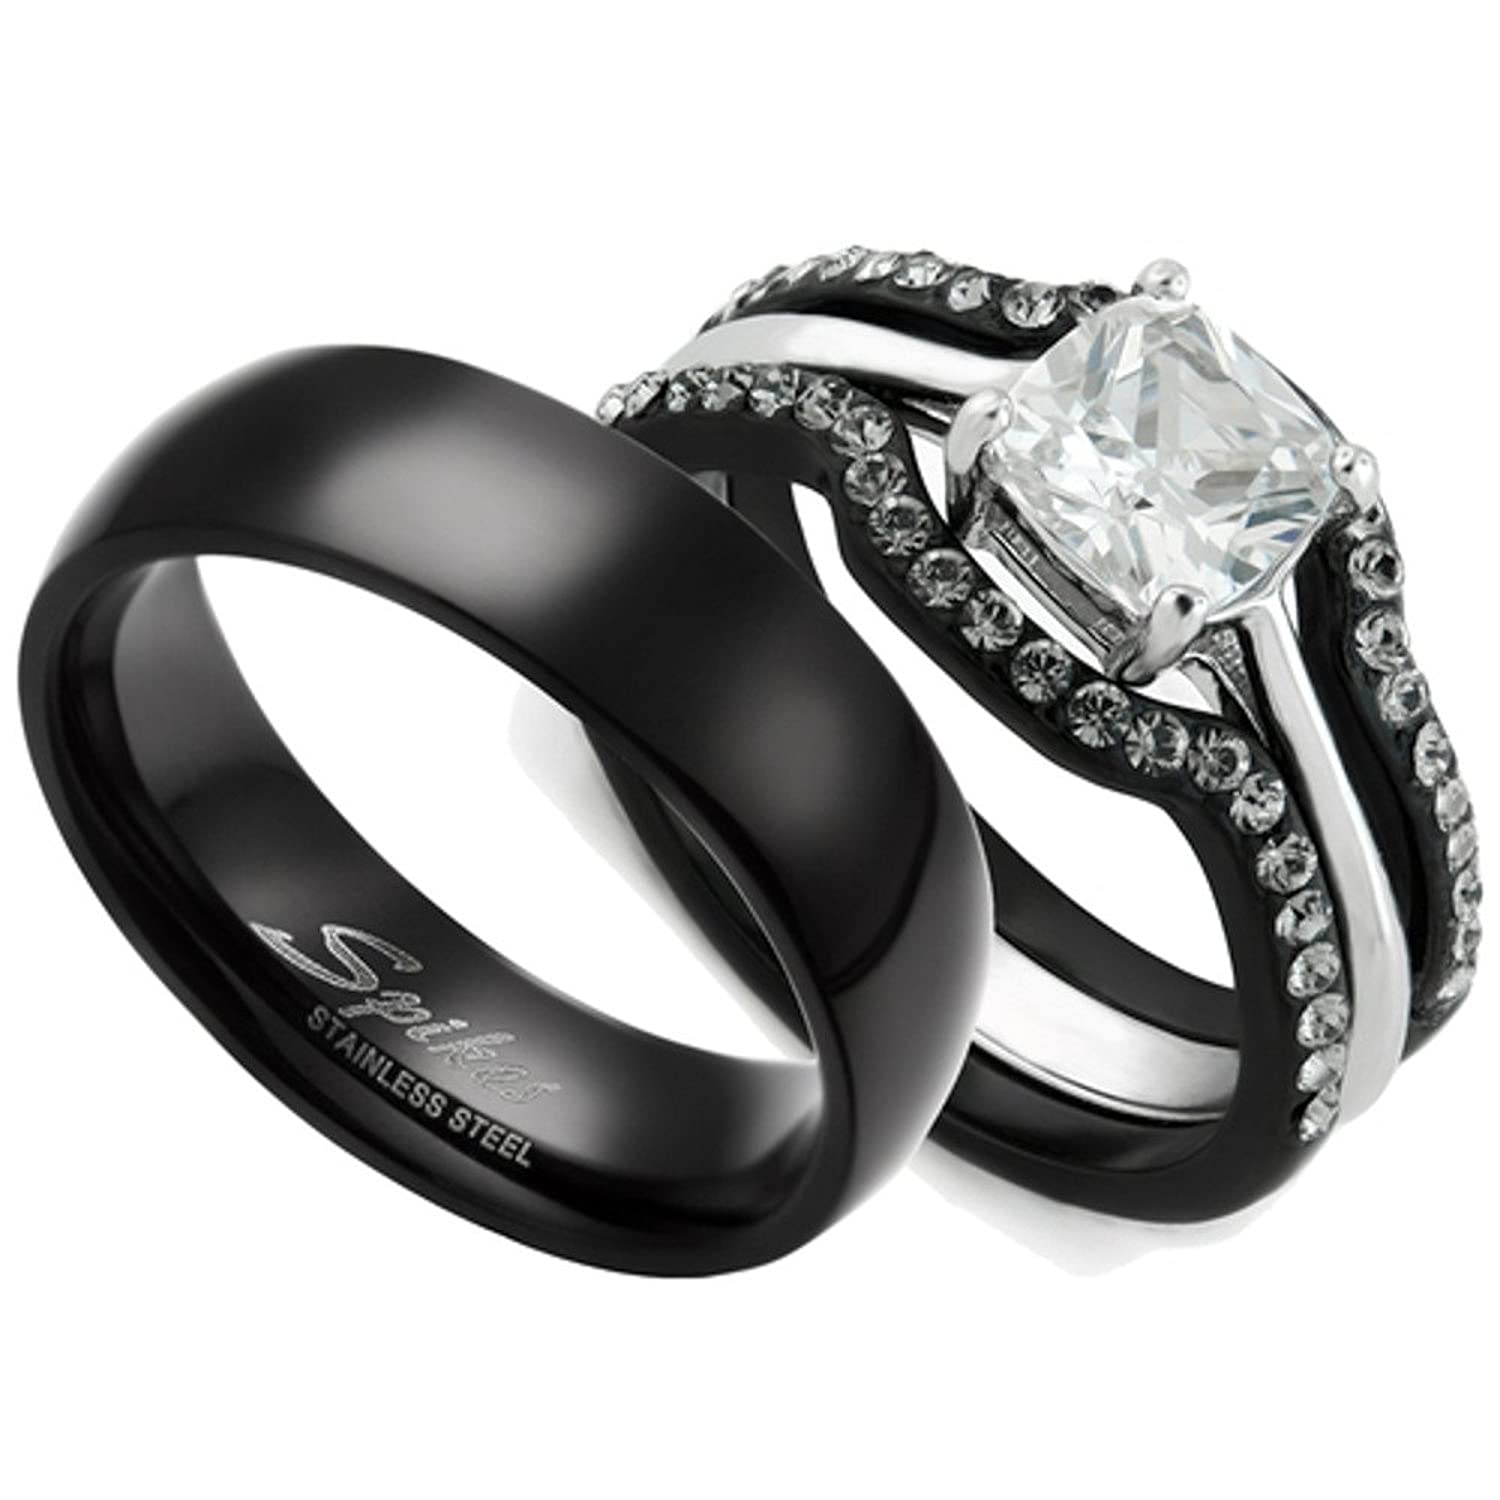 jewelry rolling three product shipping rings over free handmade black silver on sterling wedding orders banded overstock band watches ring